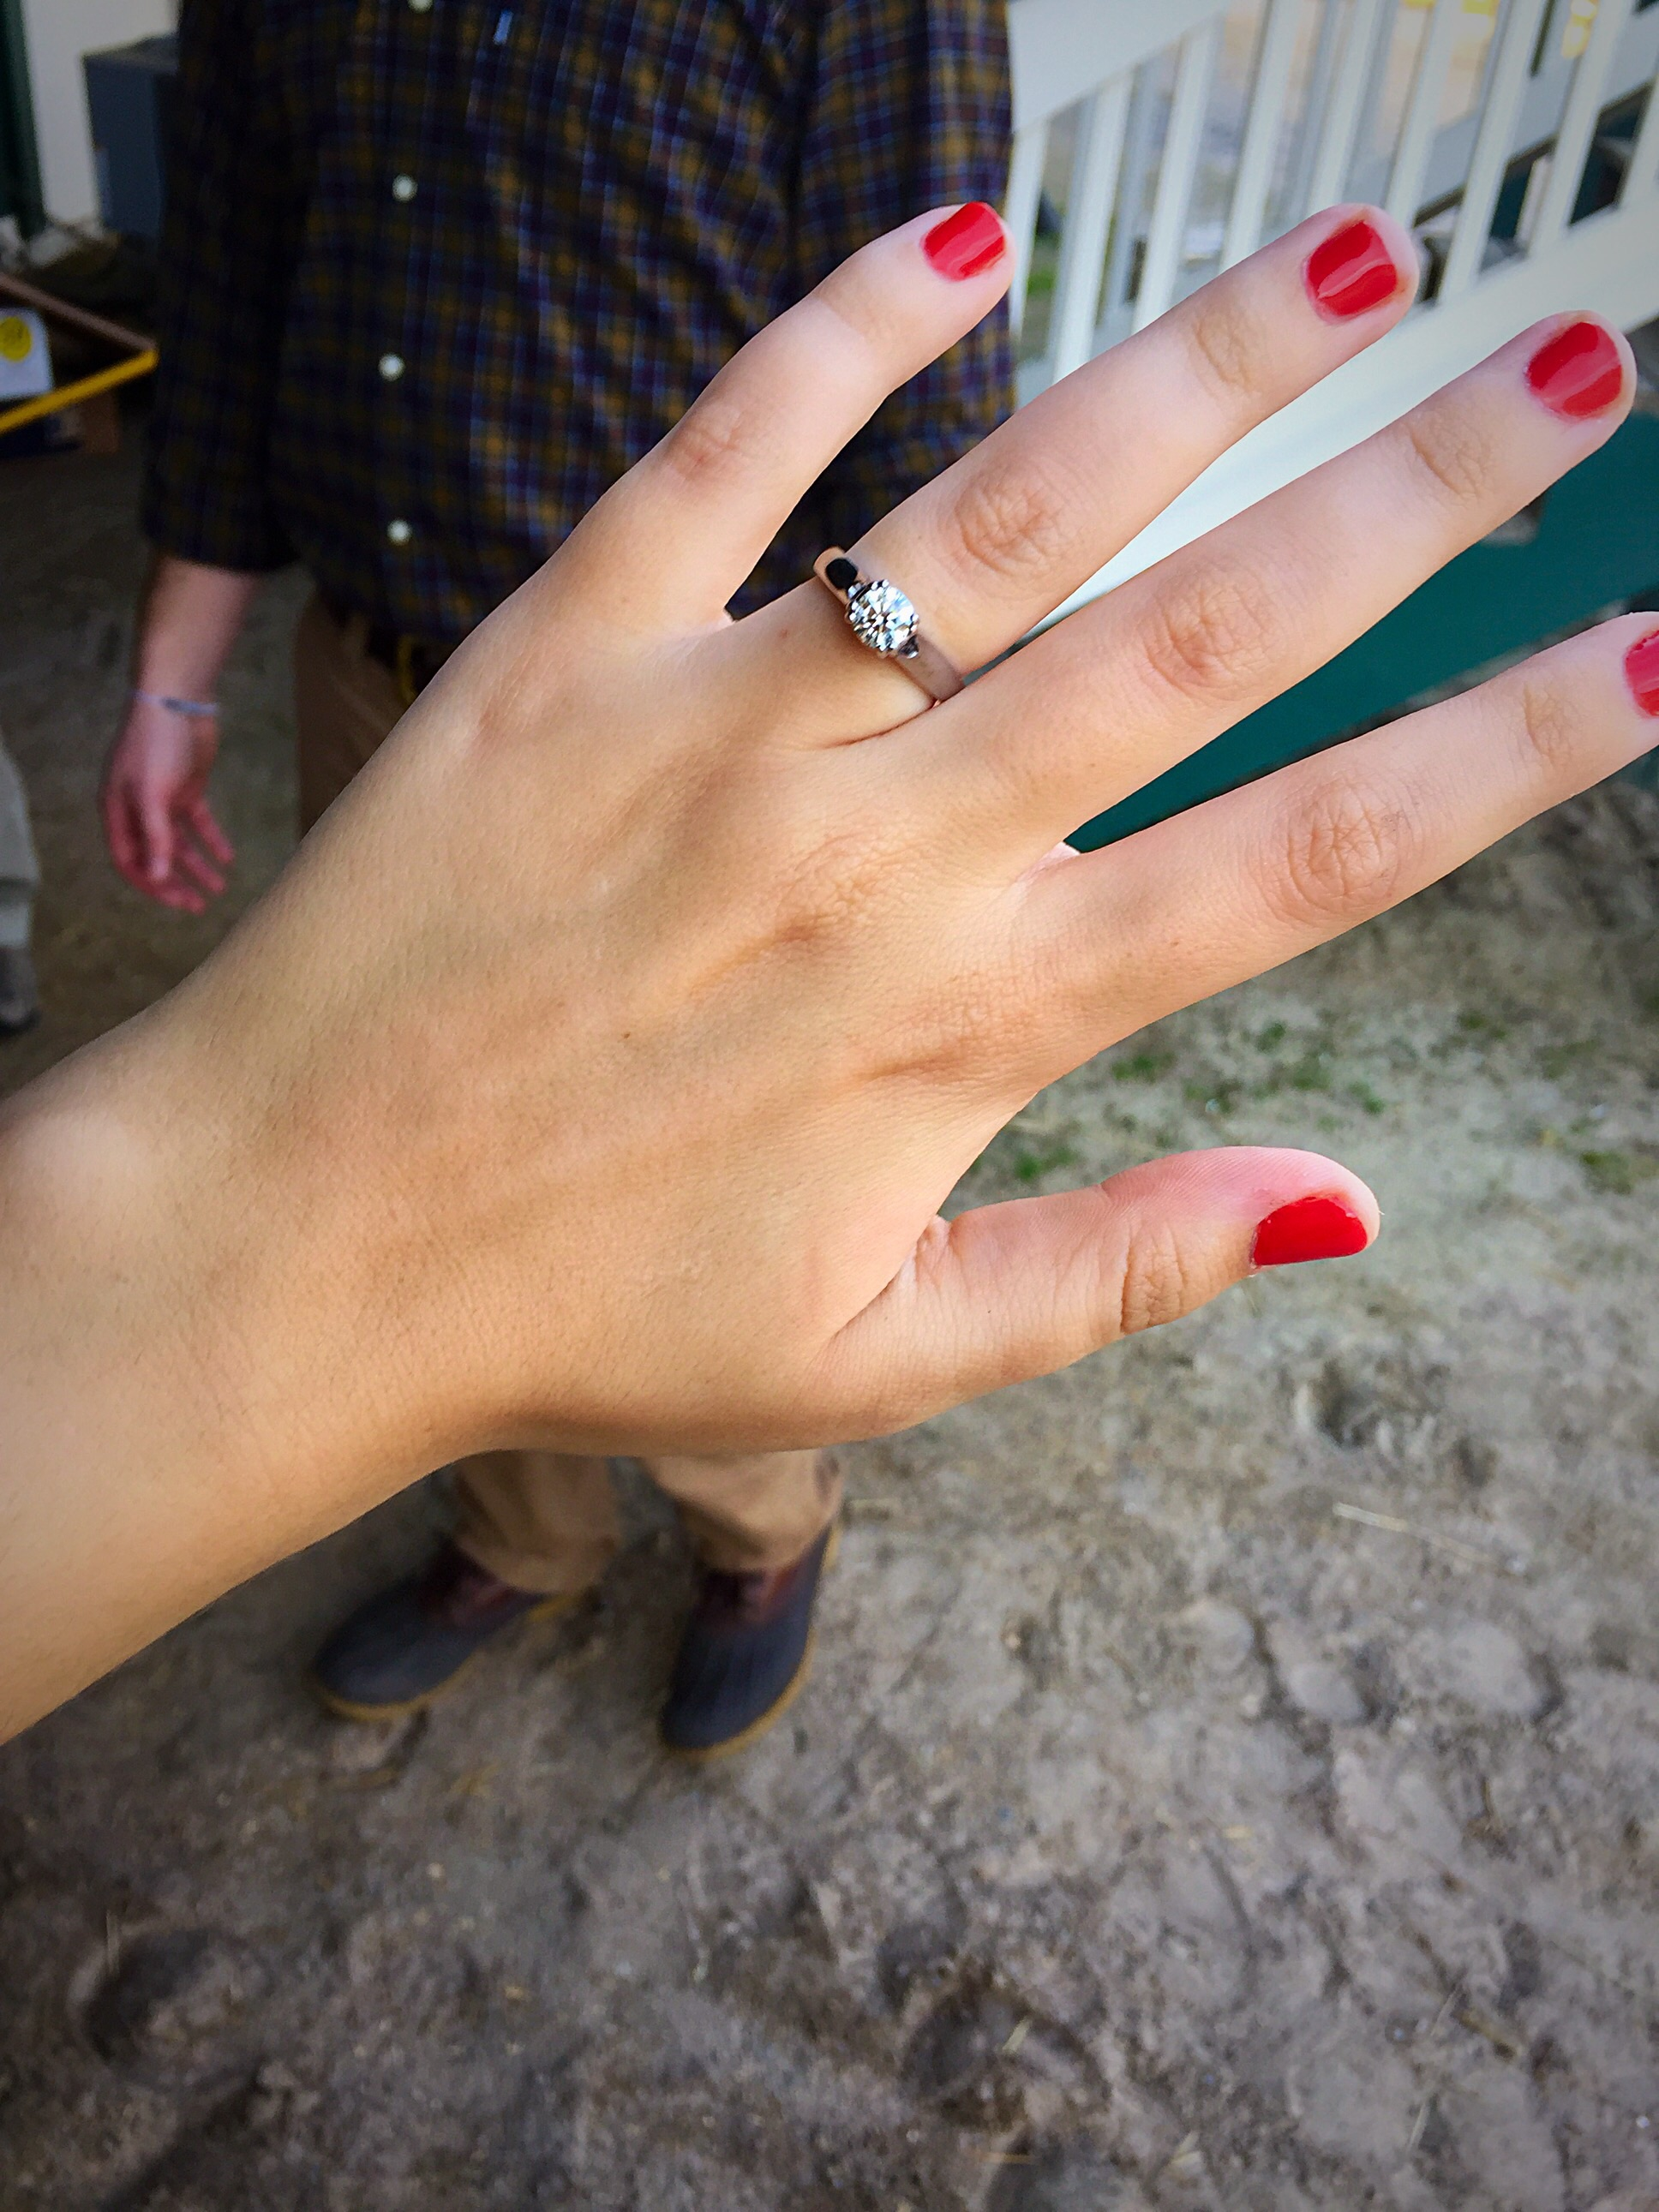 Image 3 of Reilly and Michael's Proposal at her Horse's Stable